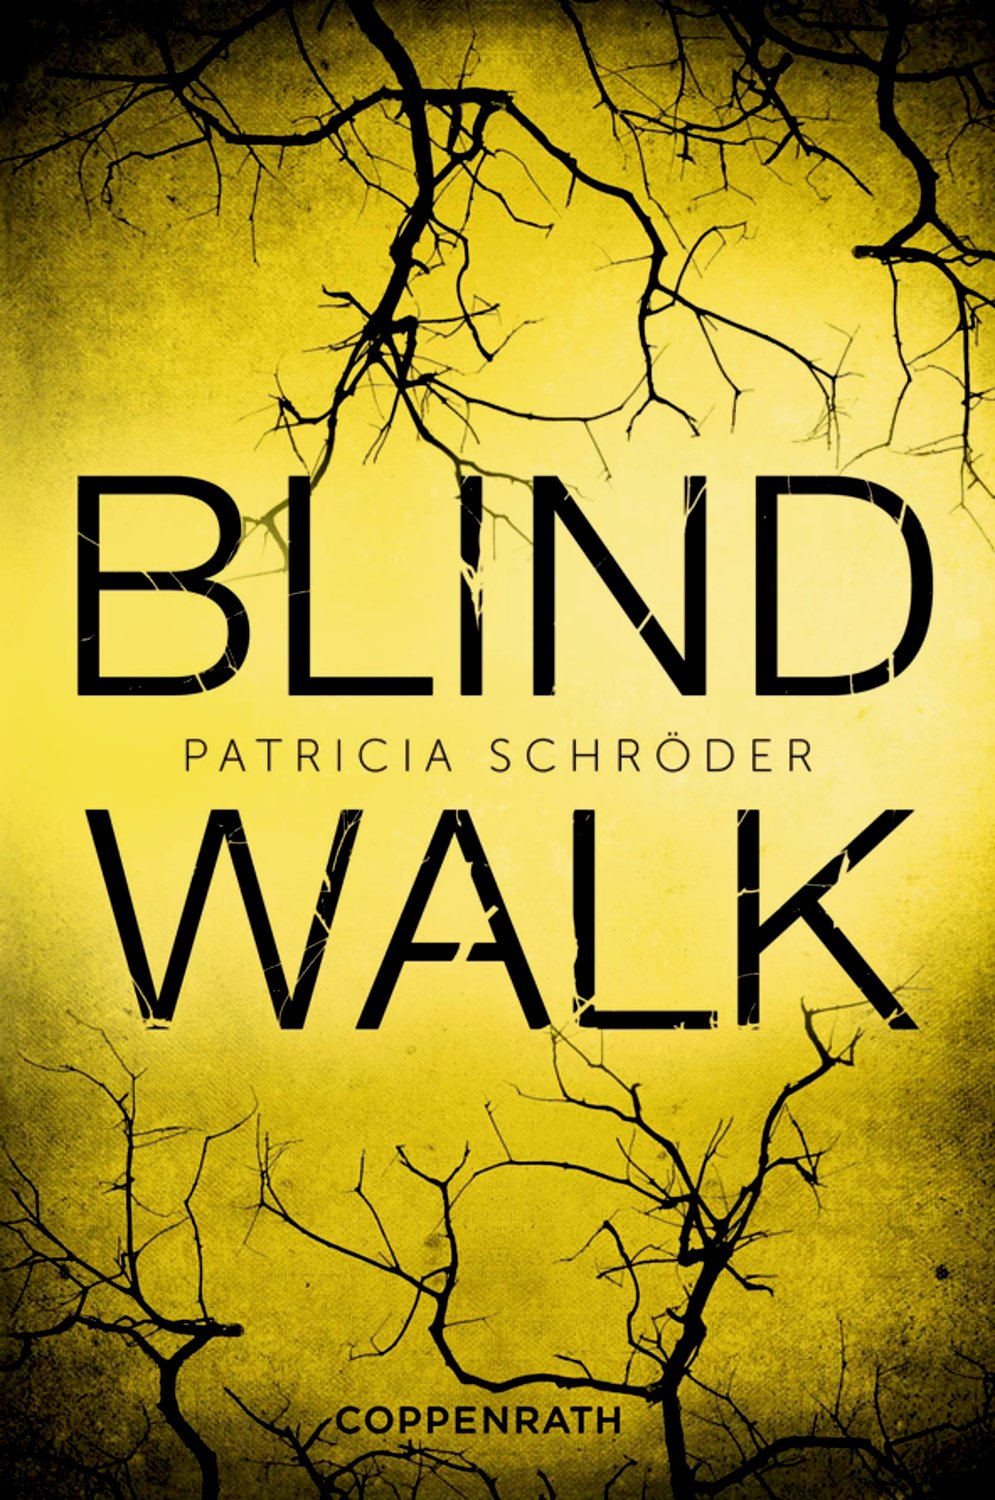 http://www.amazon.de/Blind-Walk-Patricia-Schr%C3%B6der/dp/3649617498/ref=sr_1_1?ie=UTF8&qid=1414658337&sr=8-1&keywords=blind+walk